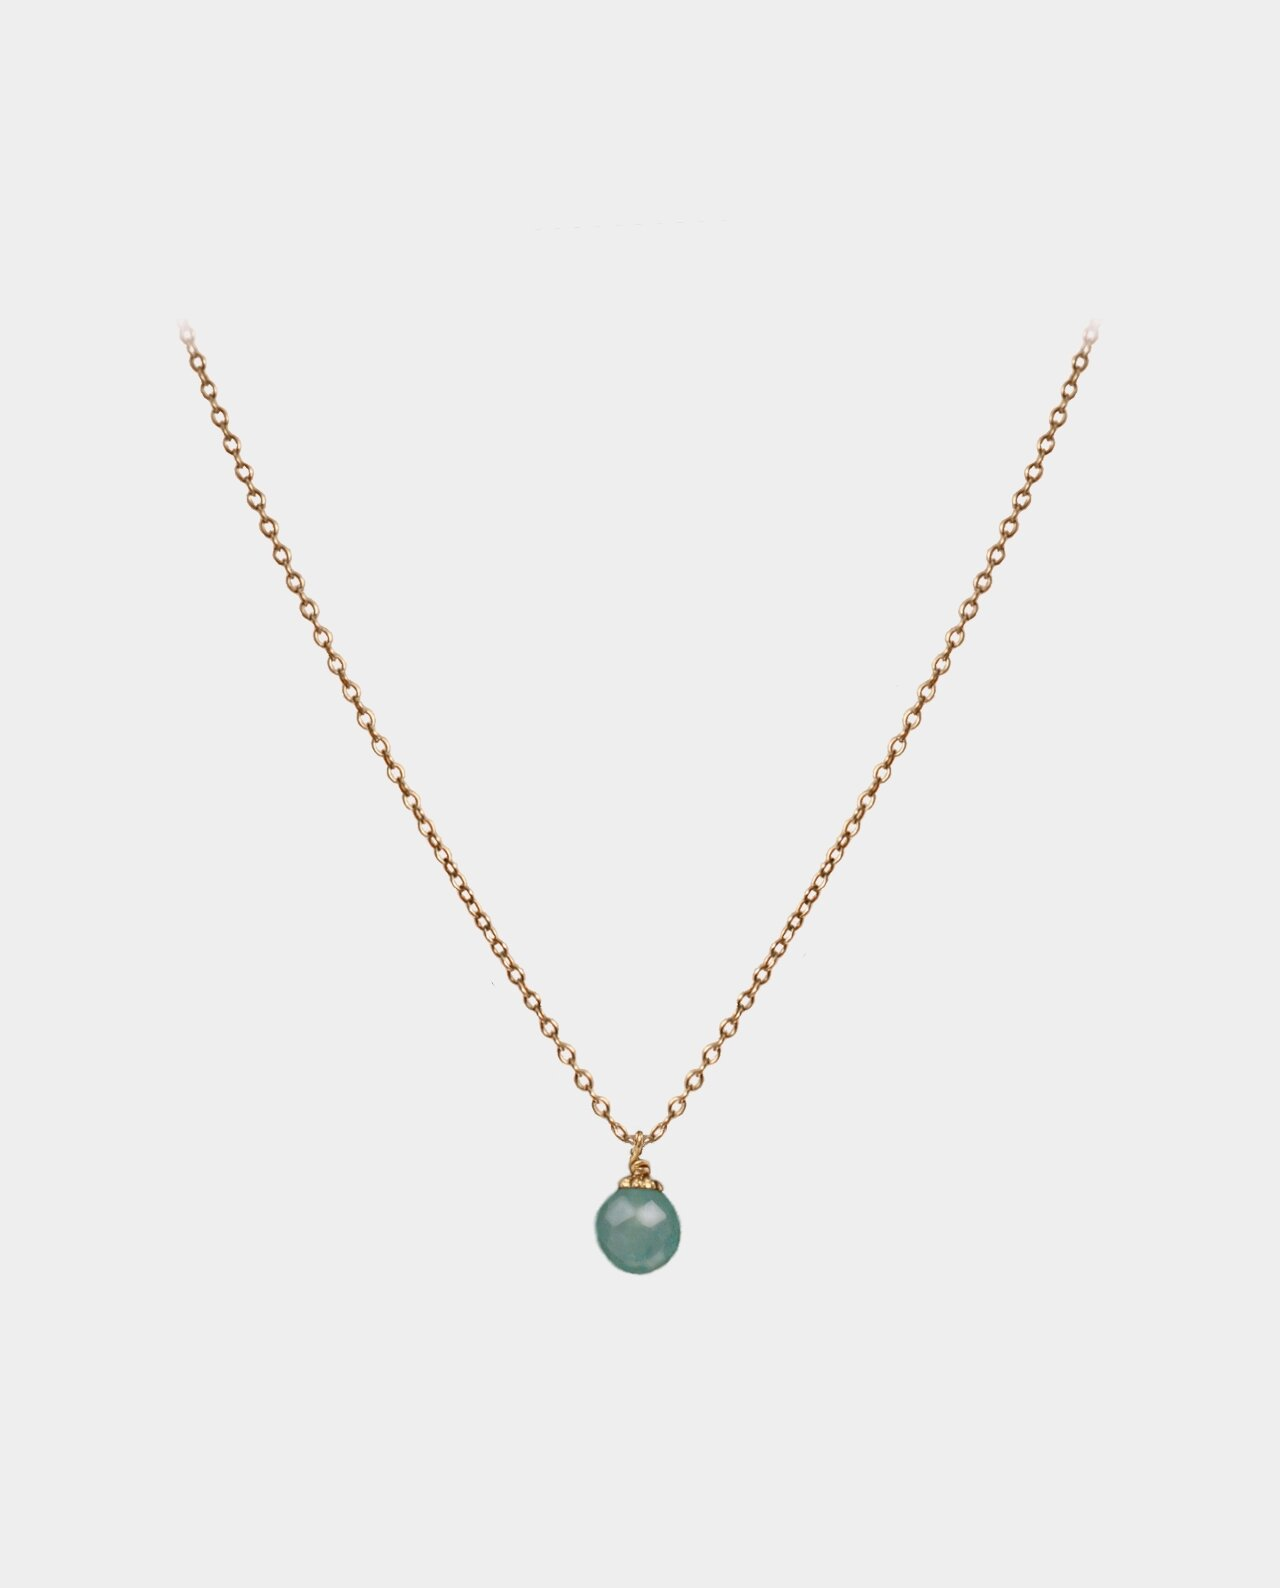 Necklace with round aventurine whose greenish color highlights your complexion and personality